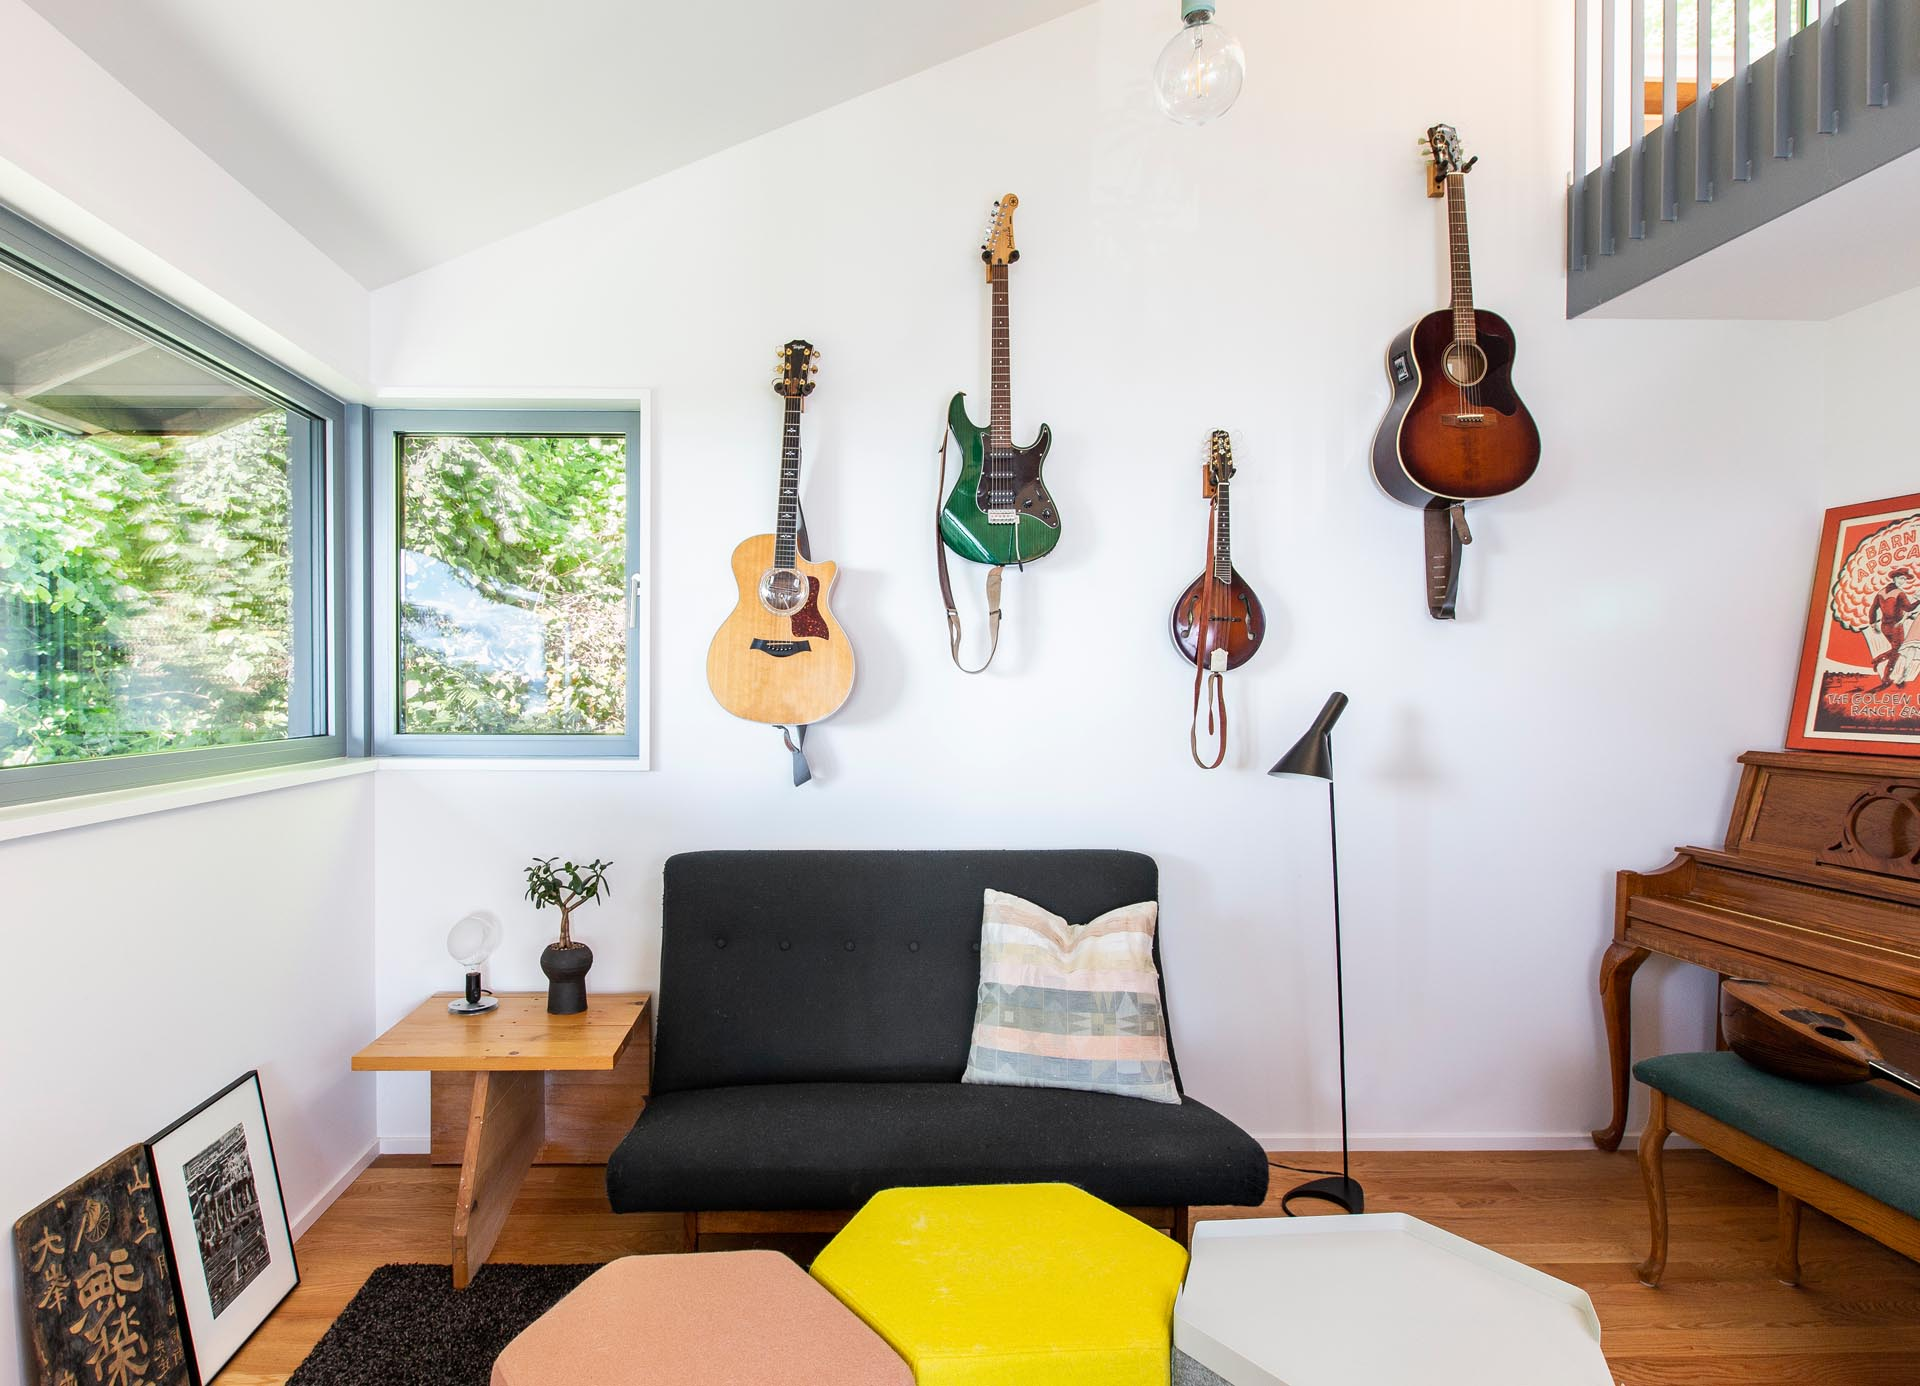 Tucked away in a small nook off a living room is a music corner, with hanging guitars, a piano, and a small sofa.